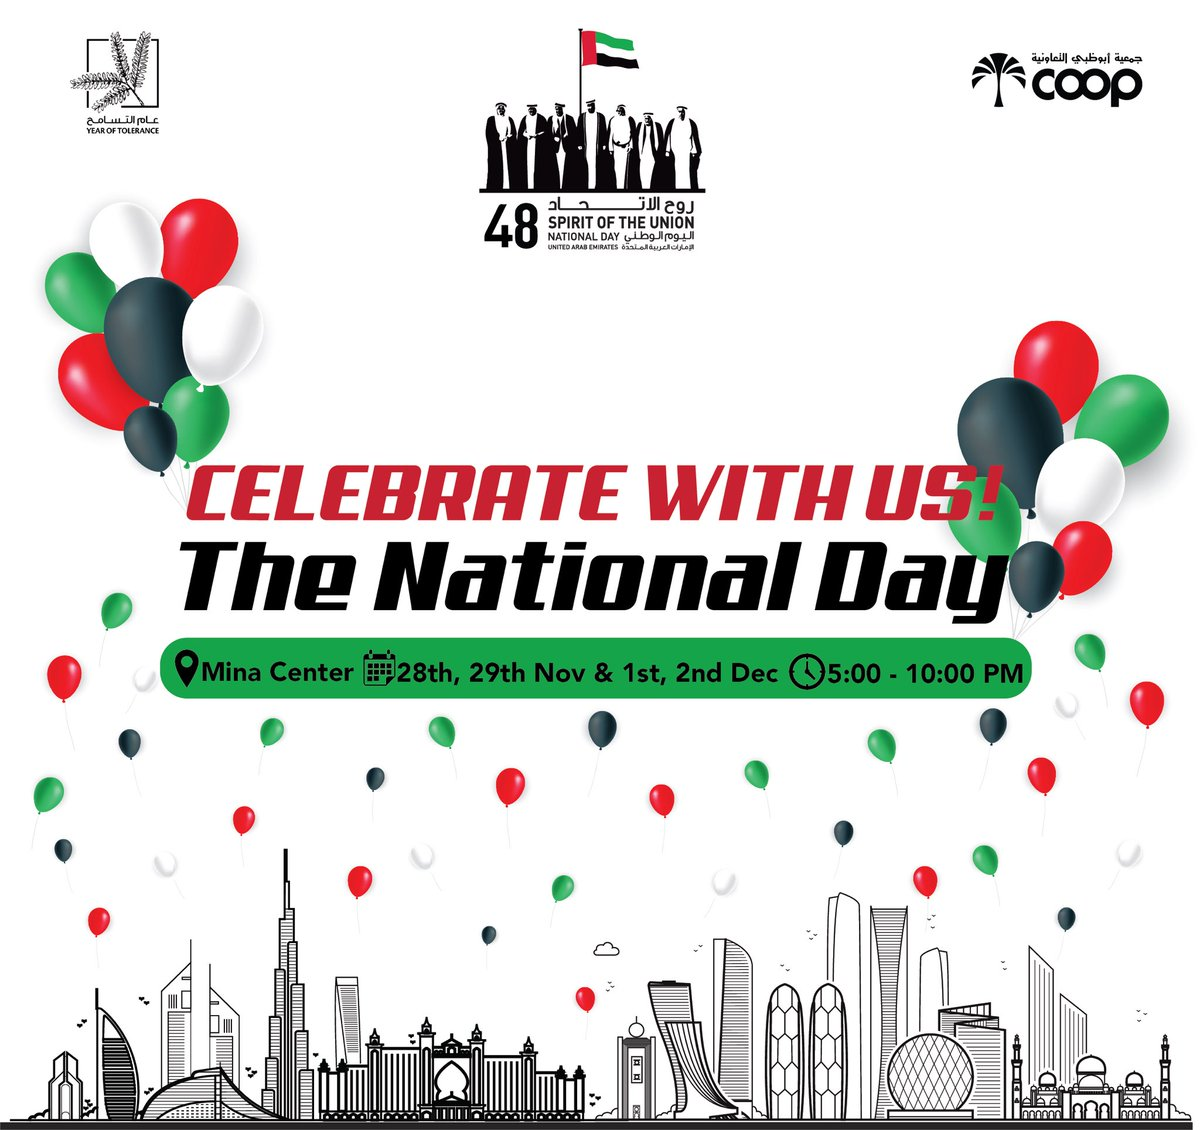 You are all invited to celebrate the national day with us!!  Join us on the 28th, 29th Nov. and 1st, 2nd Dec.  Bring your kids and enjoy the festivities.  !!أنتم مدعوون للاحتفال باليوم الوطني معنا   .انضموا إلينا في 28 و 29 نوفمبر و 1 ديسمبر  .أحضروا أطفالكم واستمتعوا بالاحتفالات – at Mina Centre